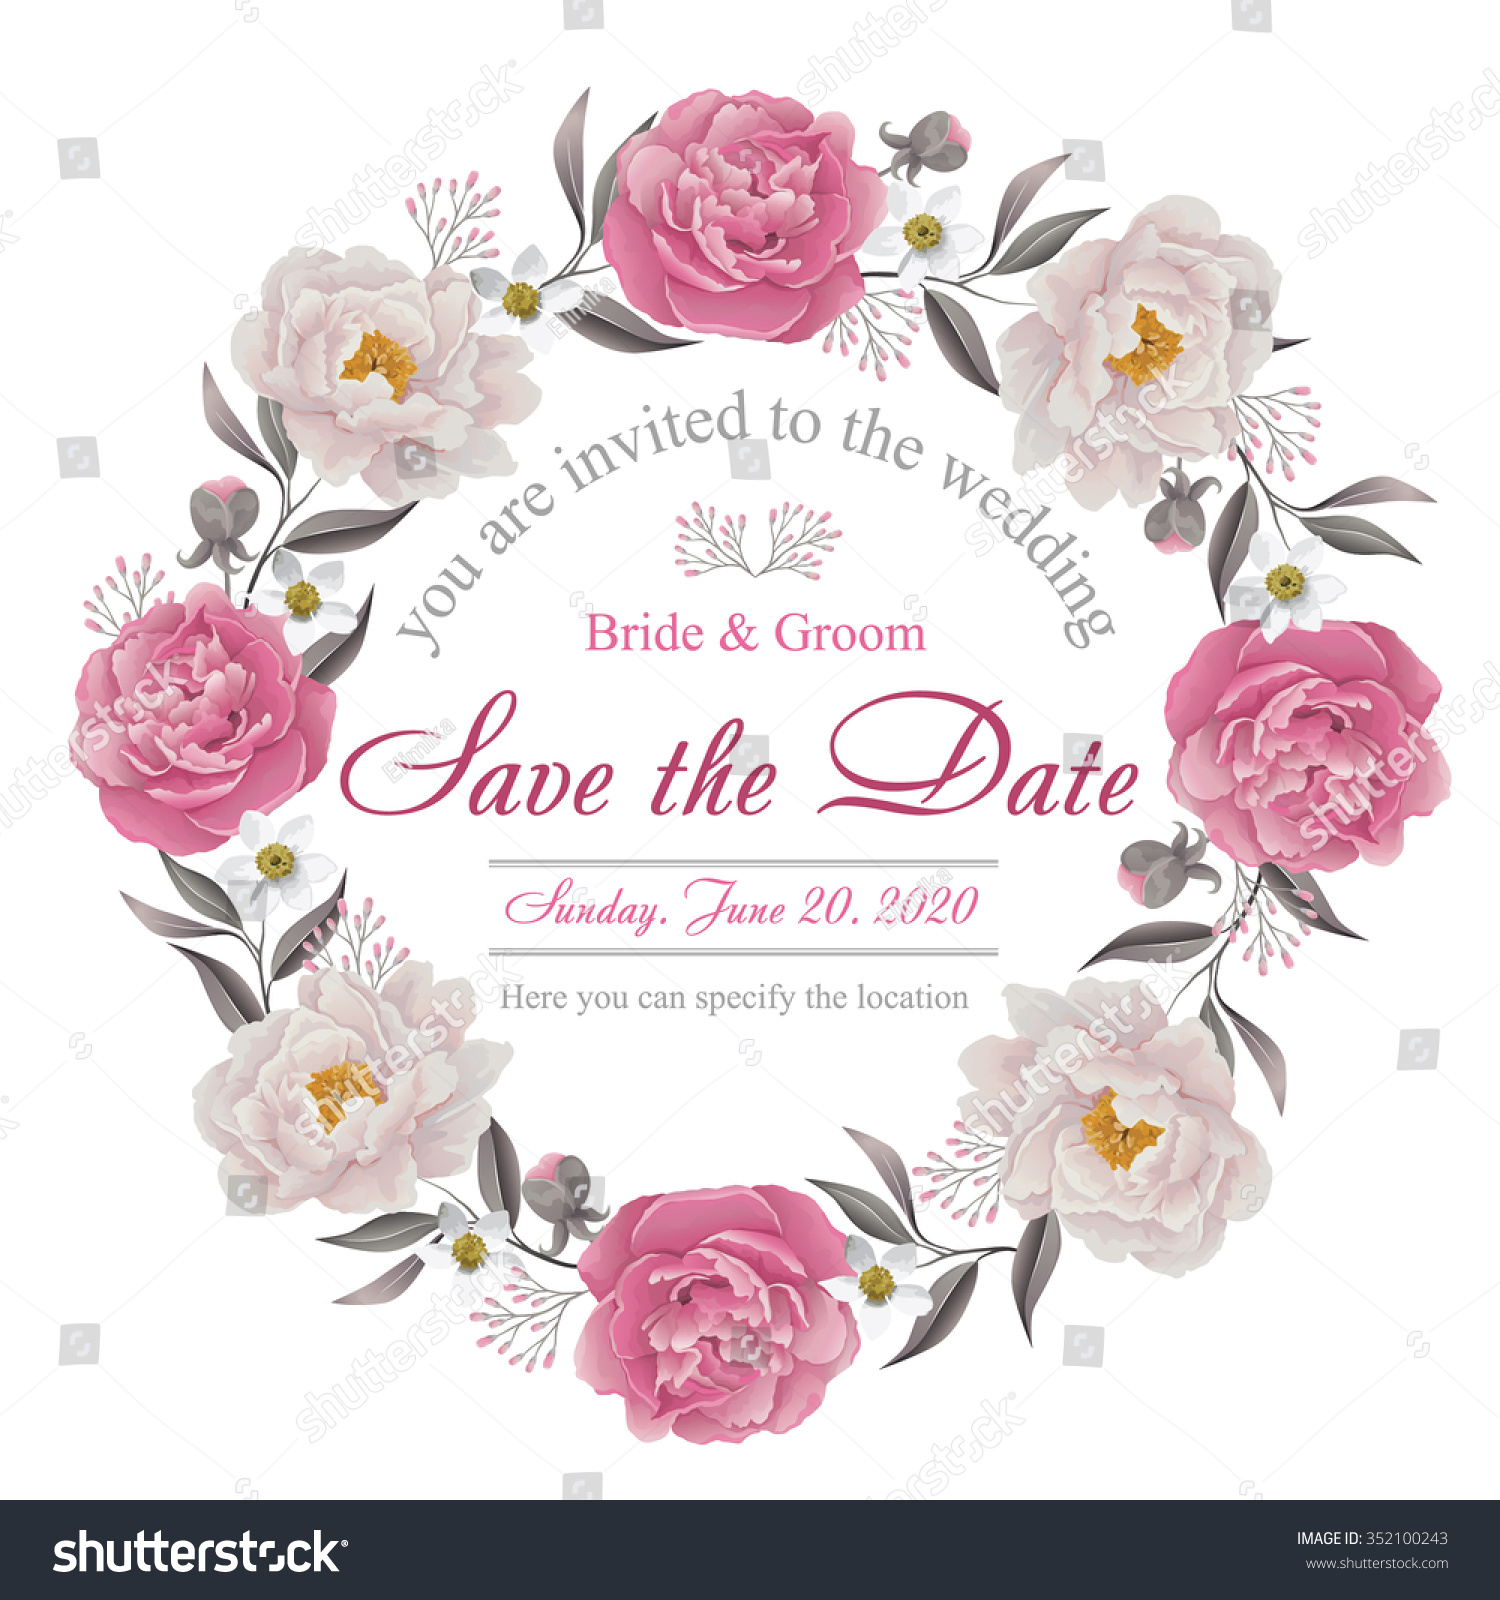 Save The Date Wedding Floral Ornament Wedding Floral: Flower Wedding Invitation Card Save Date Stock Vector